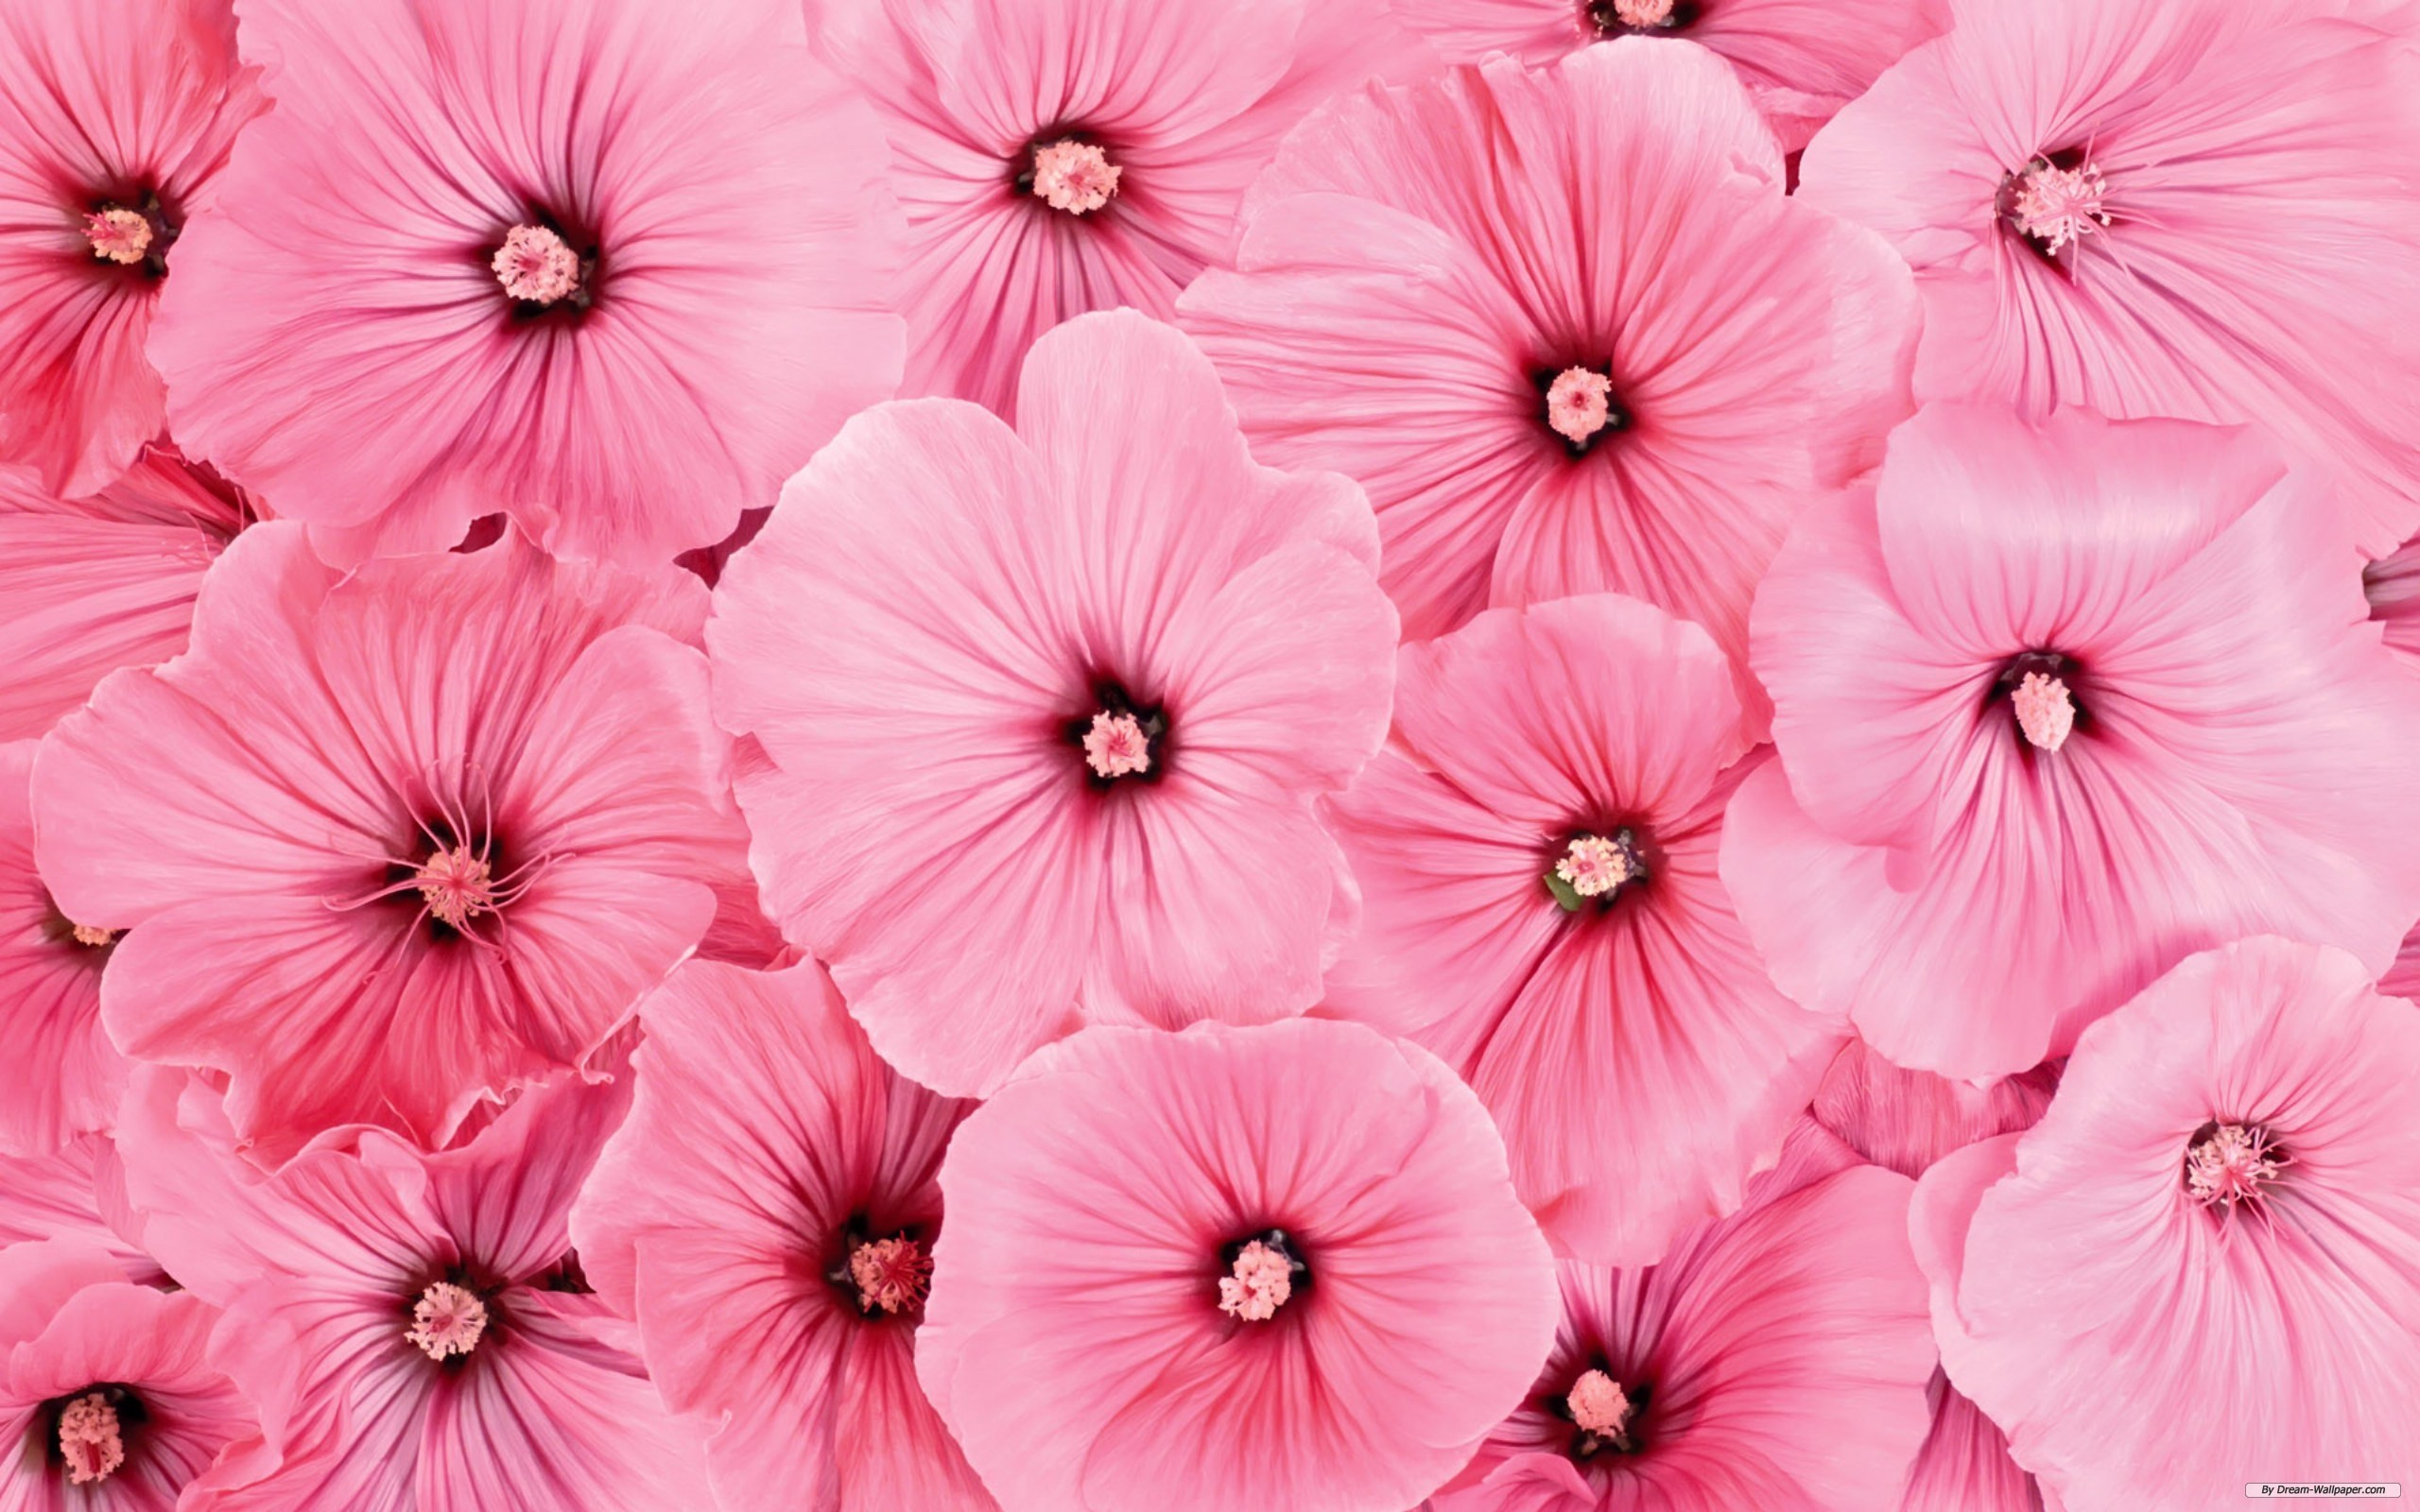 Flower pink wallpaper wallpapersafari pink flowers wallpapers hd pictures one hd wallpaper pictures dhlflorist Choice Image